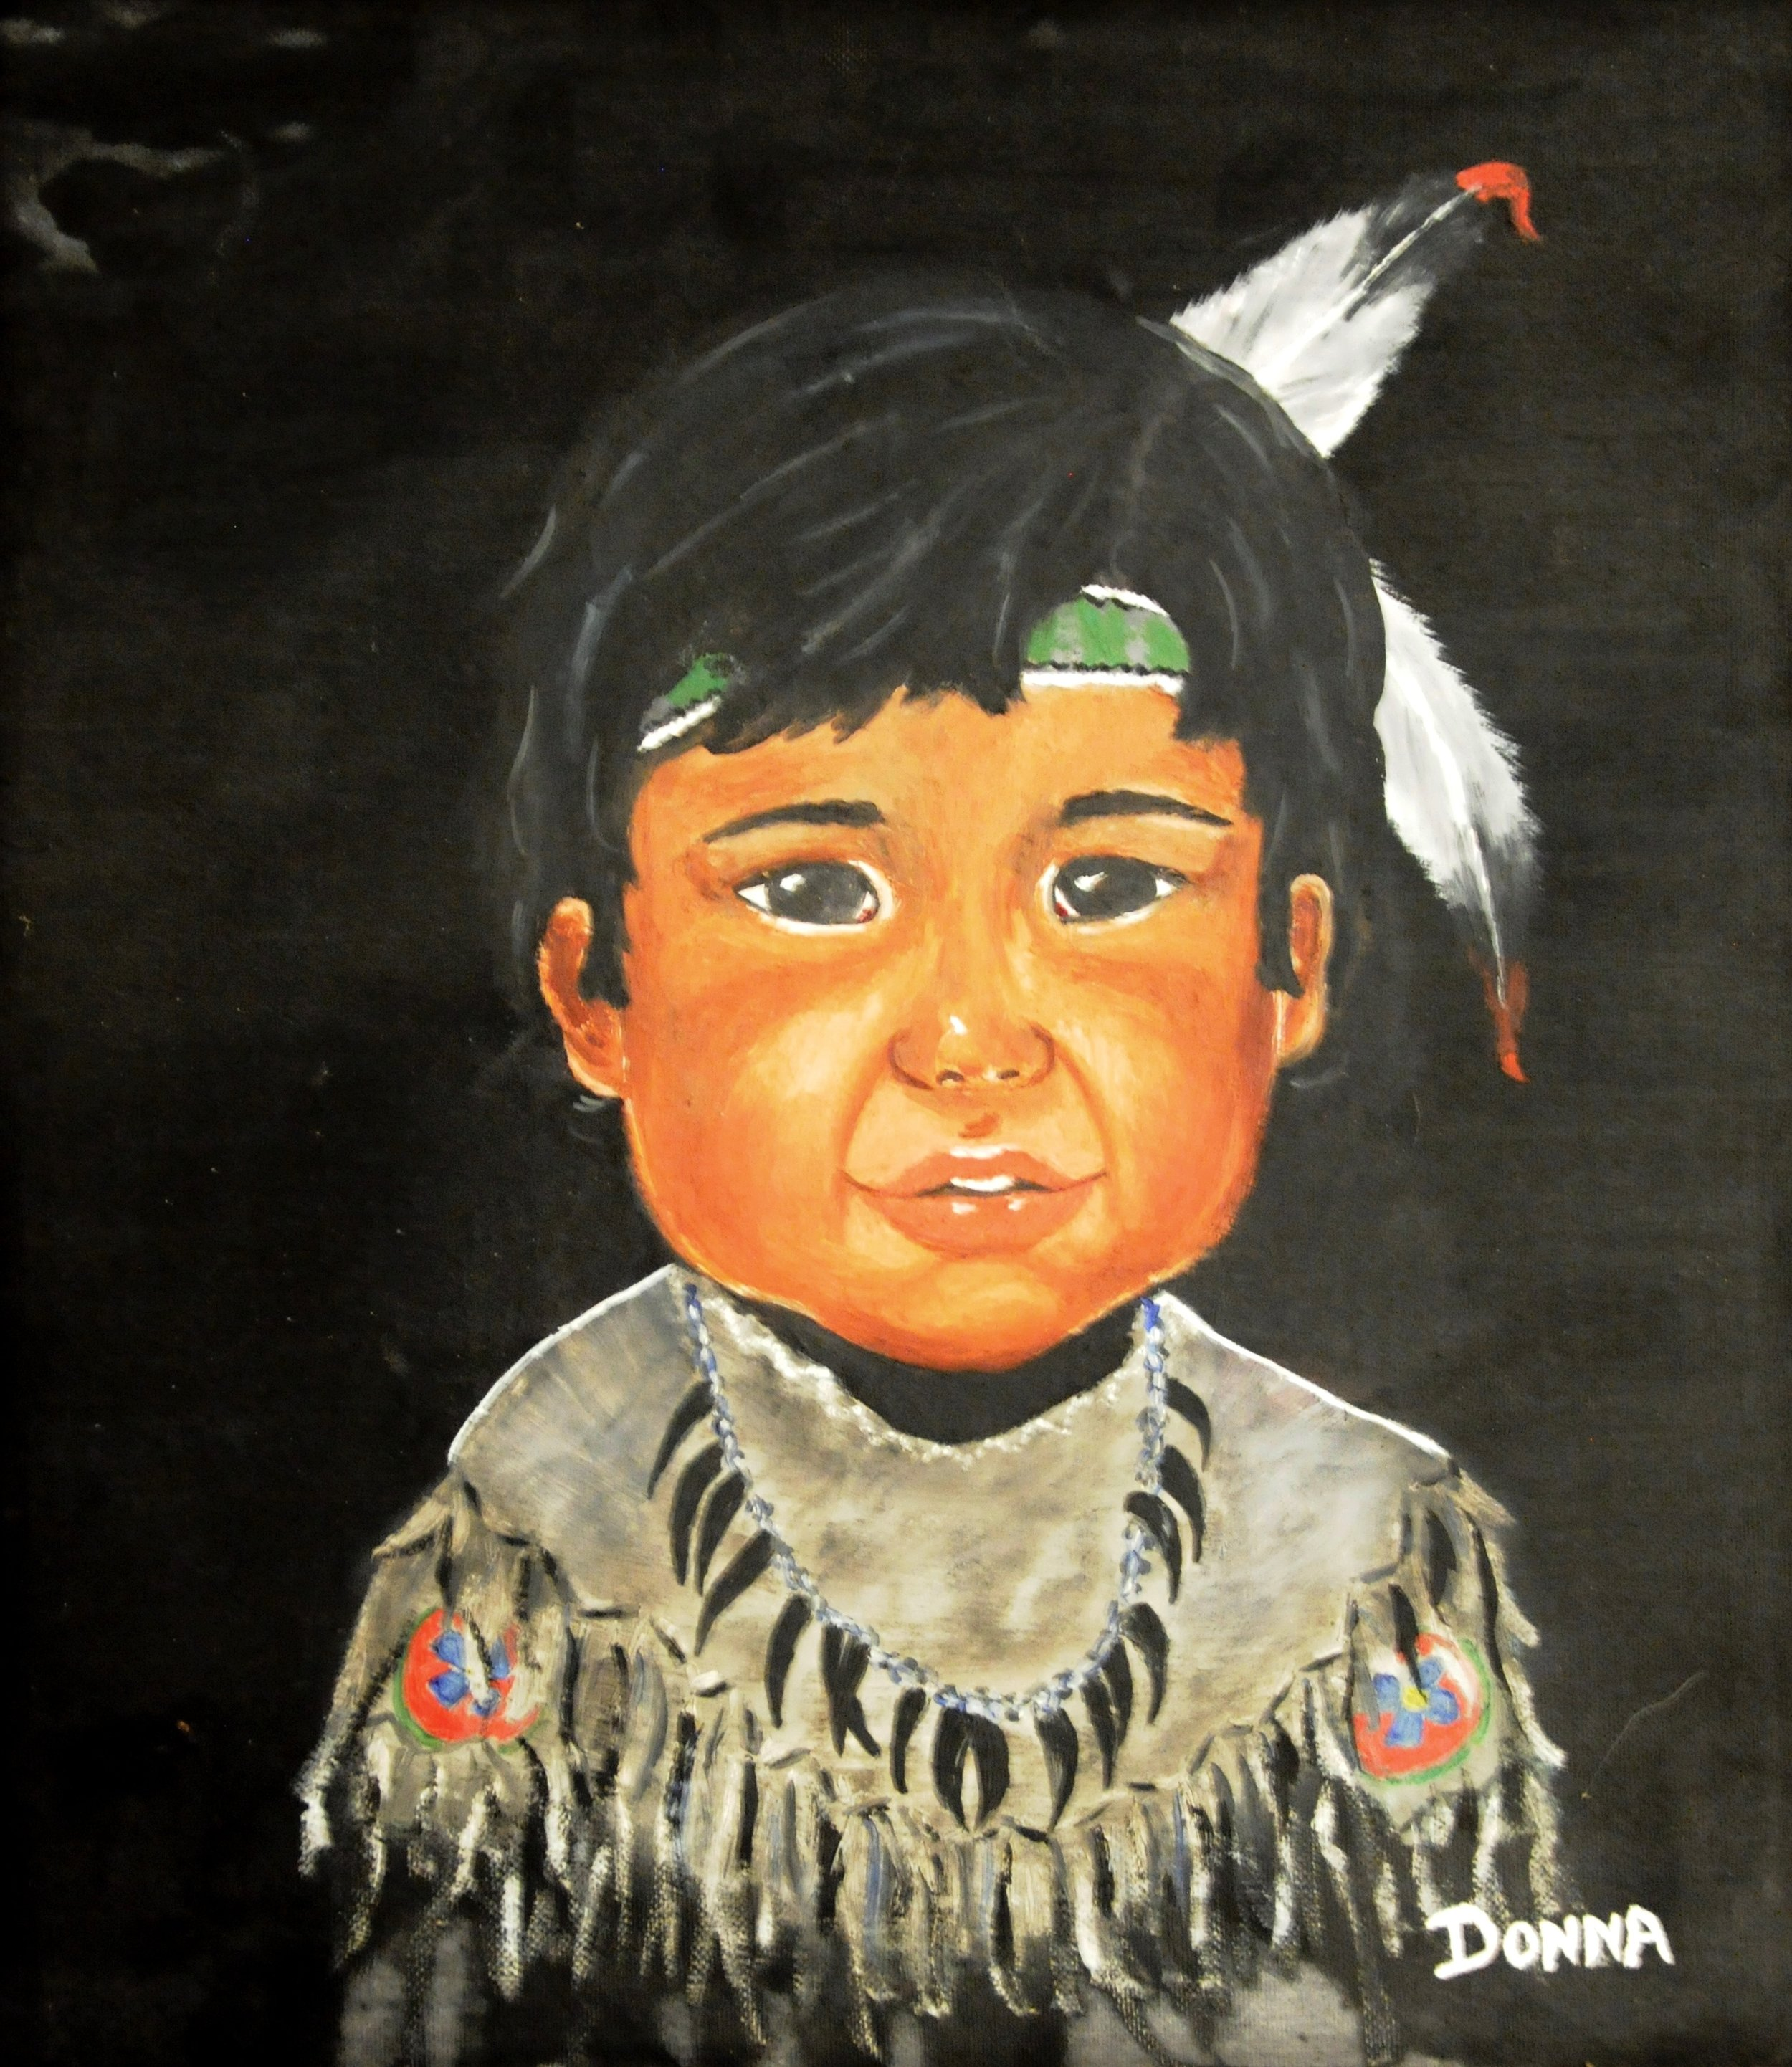 Untitled (Portrait of Boy), c. 1970s, signed Donna, acrylic on board